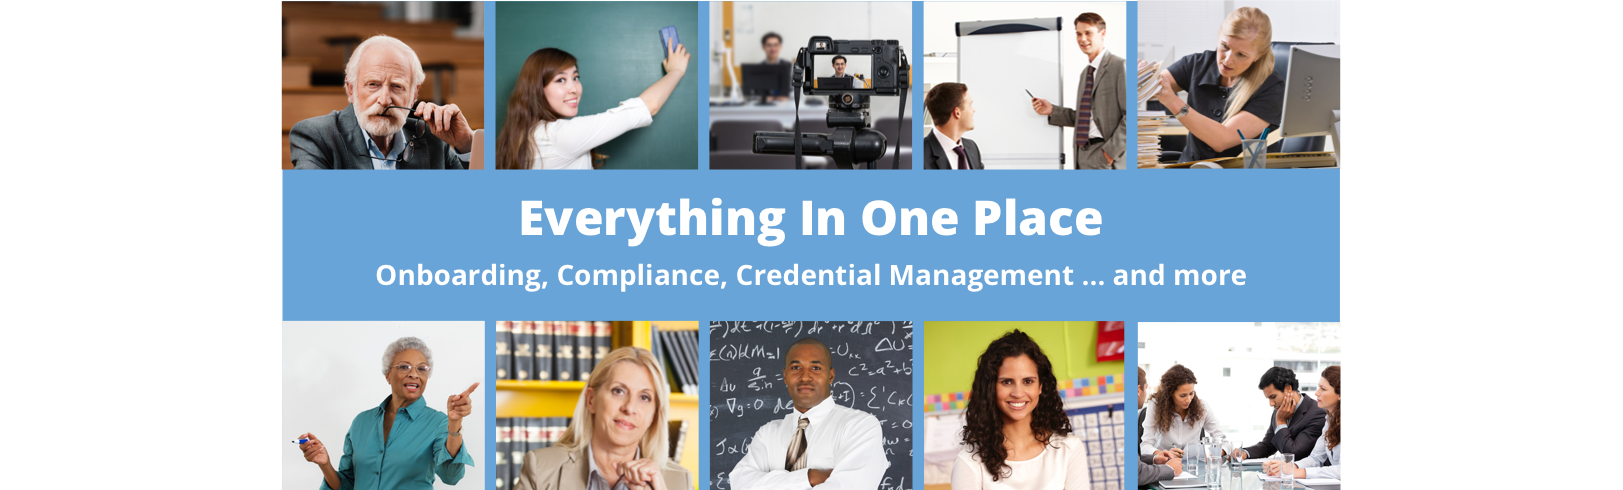 Everything In One Place - Onboarding, Compliance, Credential Management